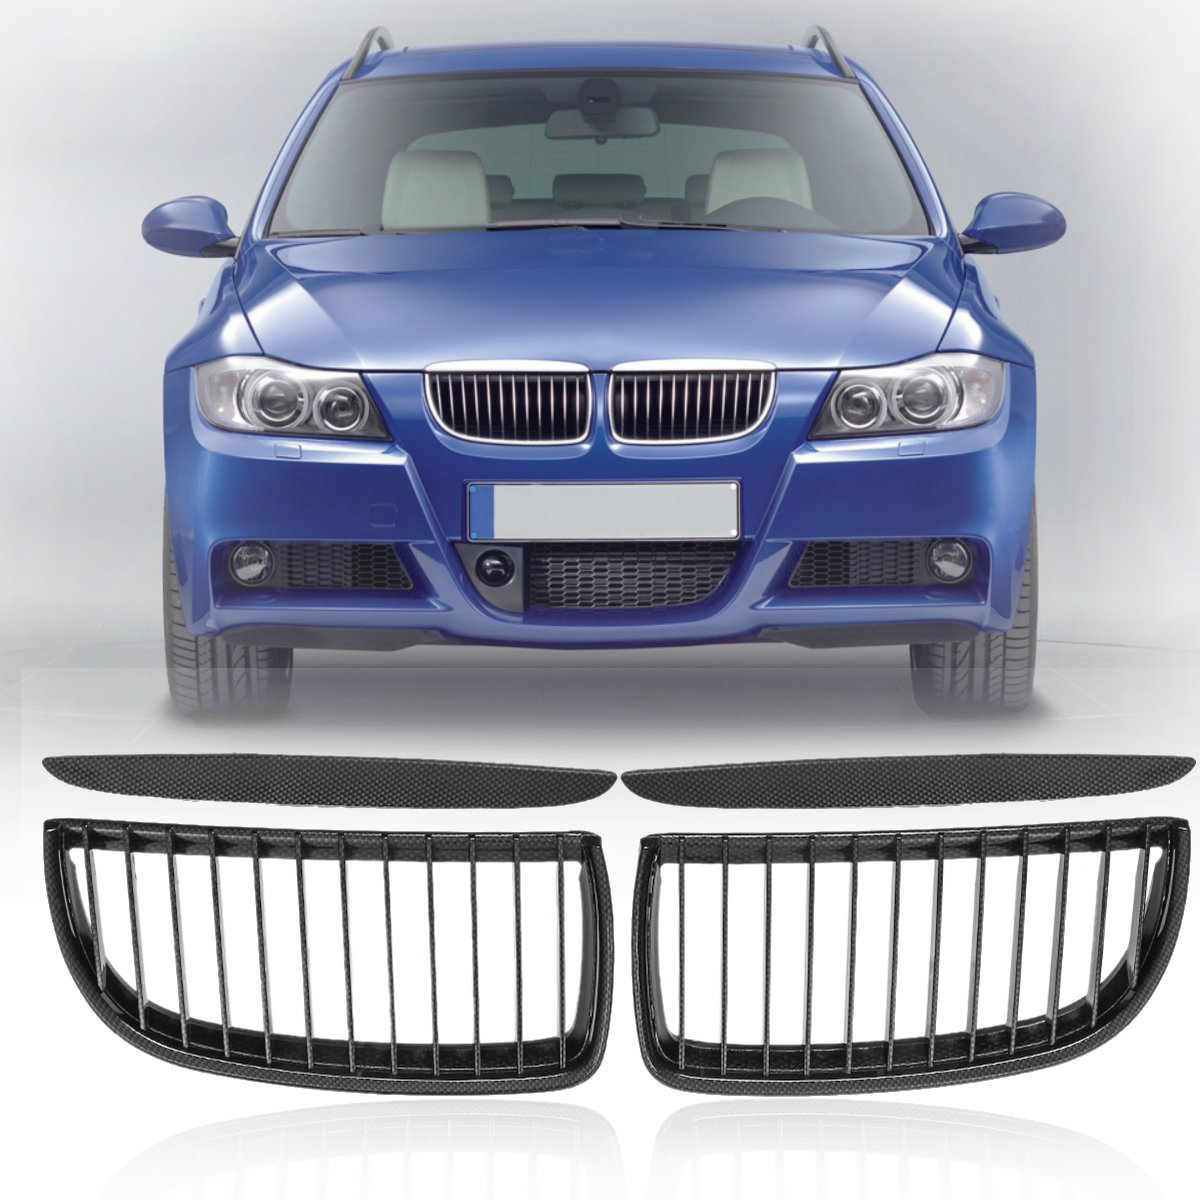 #51137120007 Pair Carbon Fiber Look Front Kidney Grill Grille For Bmw E90/e91 Sedan Touring 4-door 2005 2006 2007 2008 Street Price